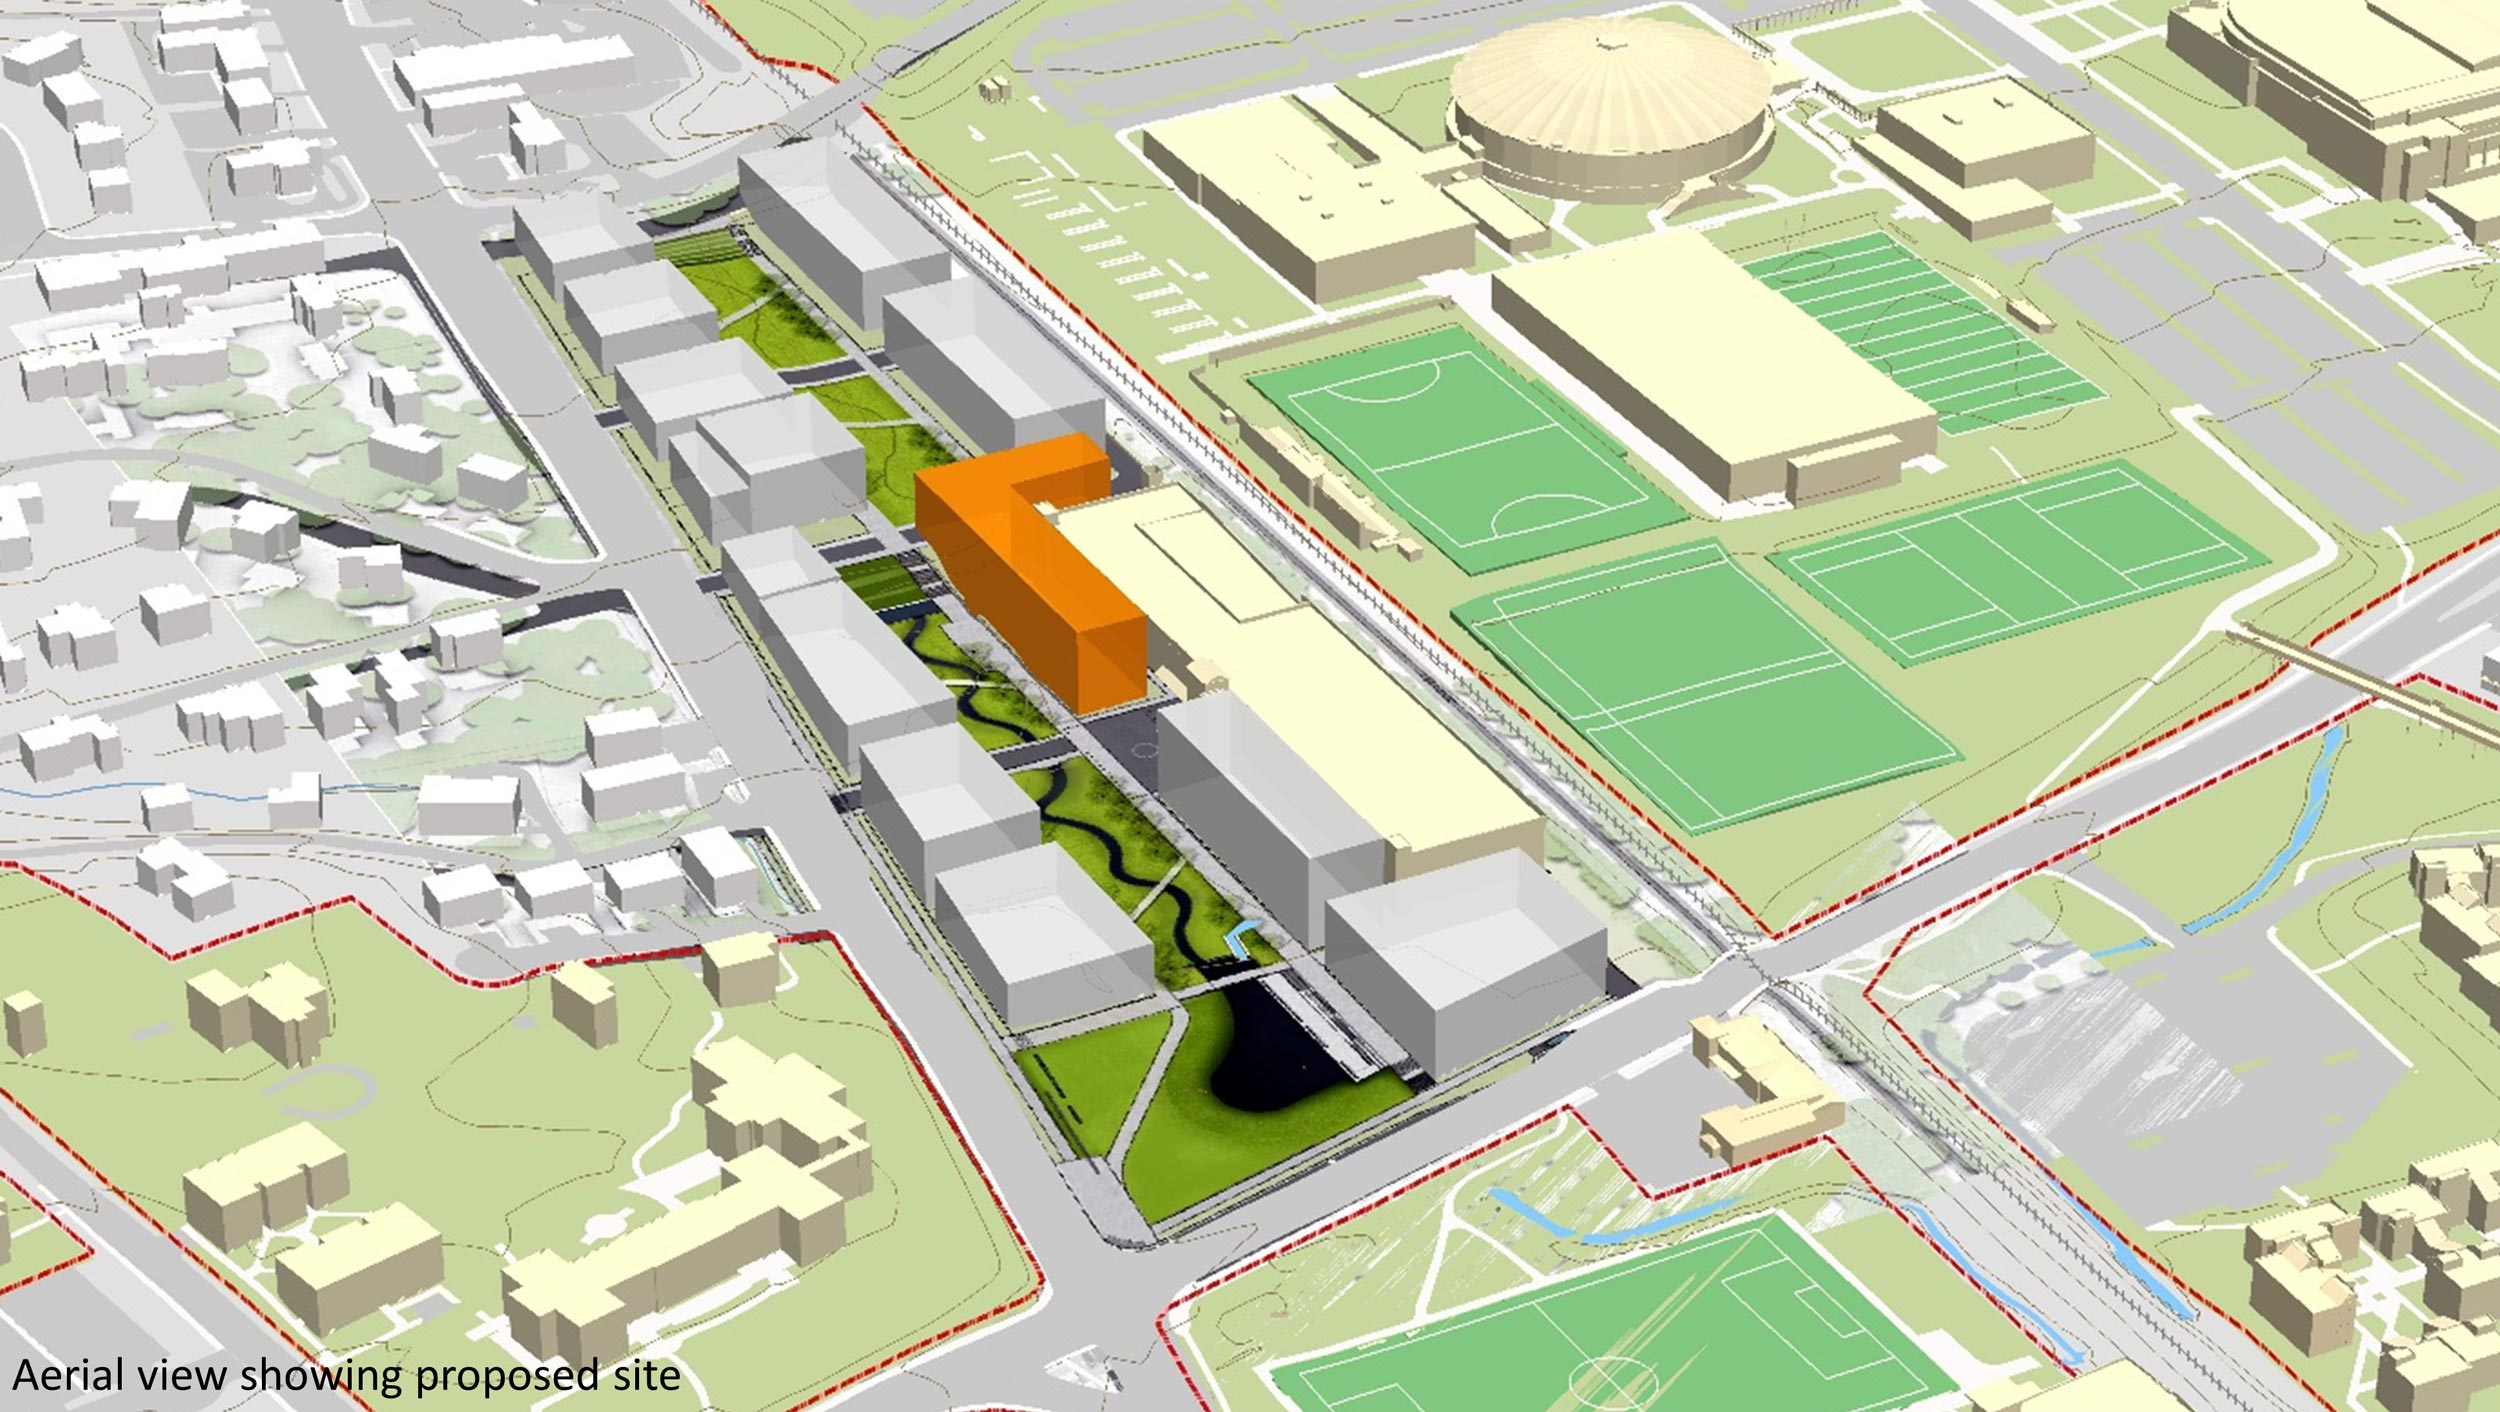 A preliminary site plan shows the hotel and conference centers proposed location in orange, wrapping around the west end of the Ivy-Emmet Parking Garage.